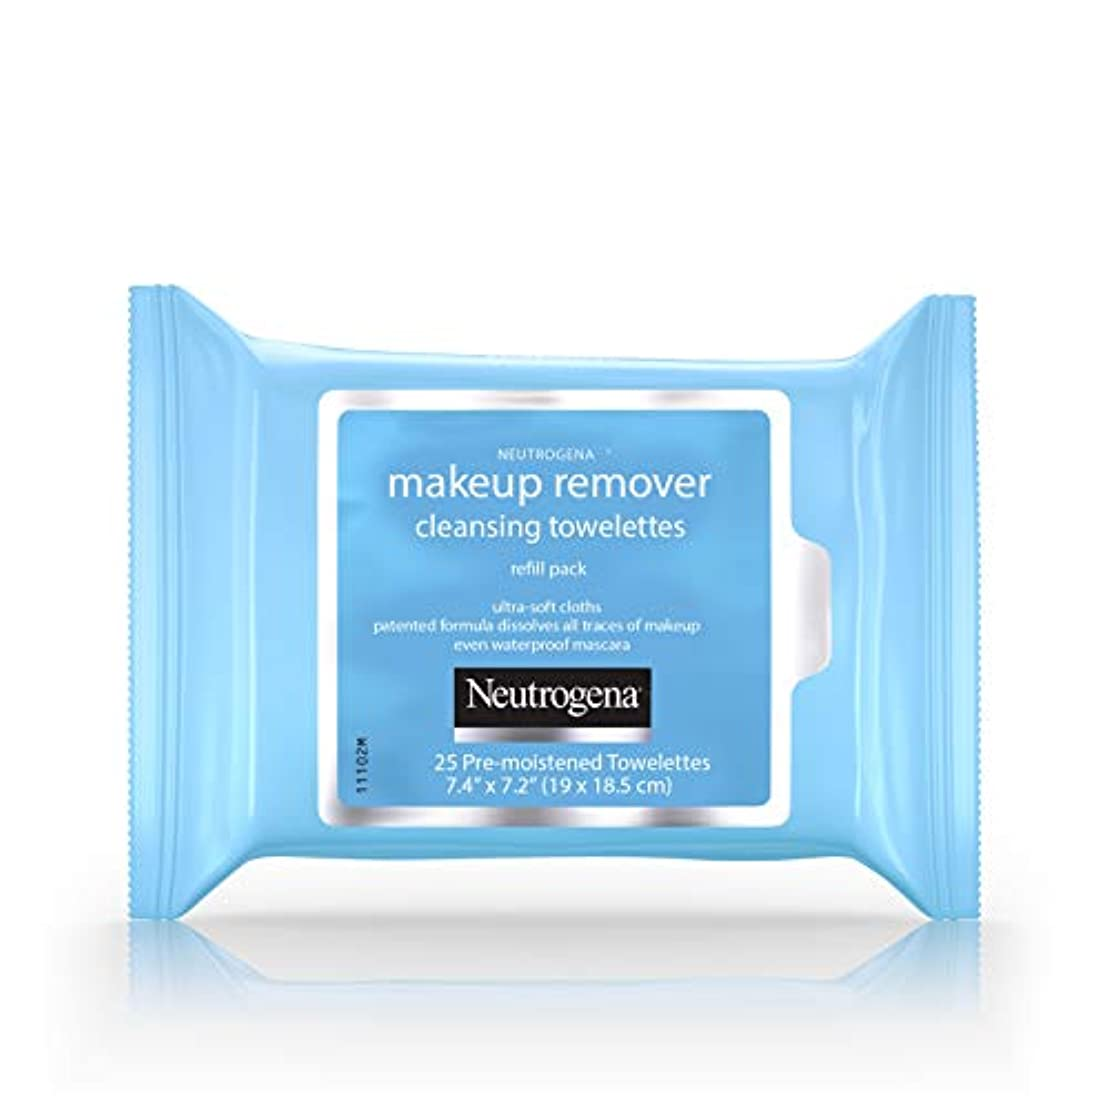 Neutrogena Make-up Remover Cleansing Towelettes Refill Pack 25 Pc (並行輸入品)